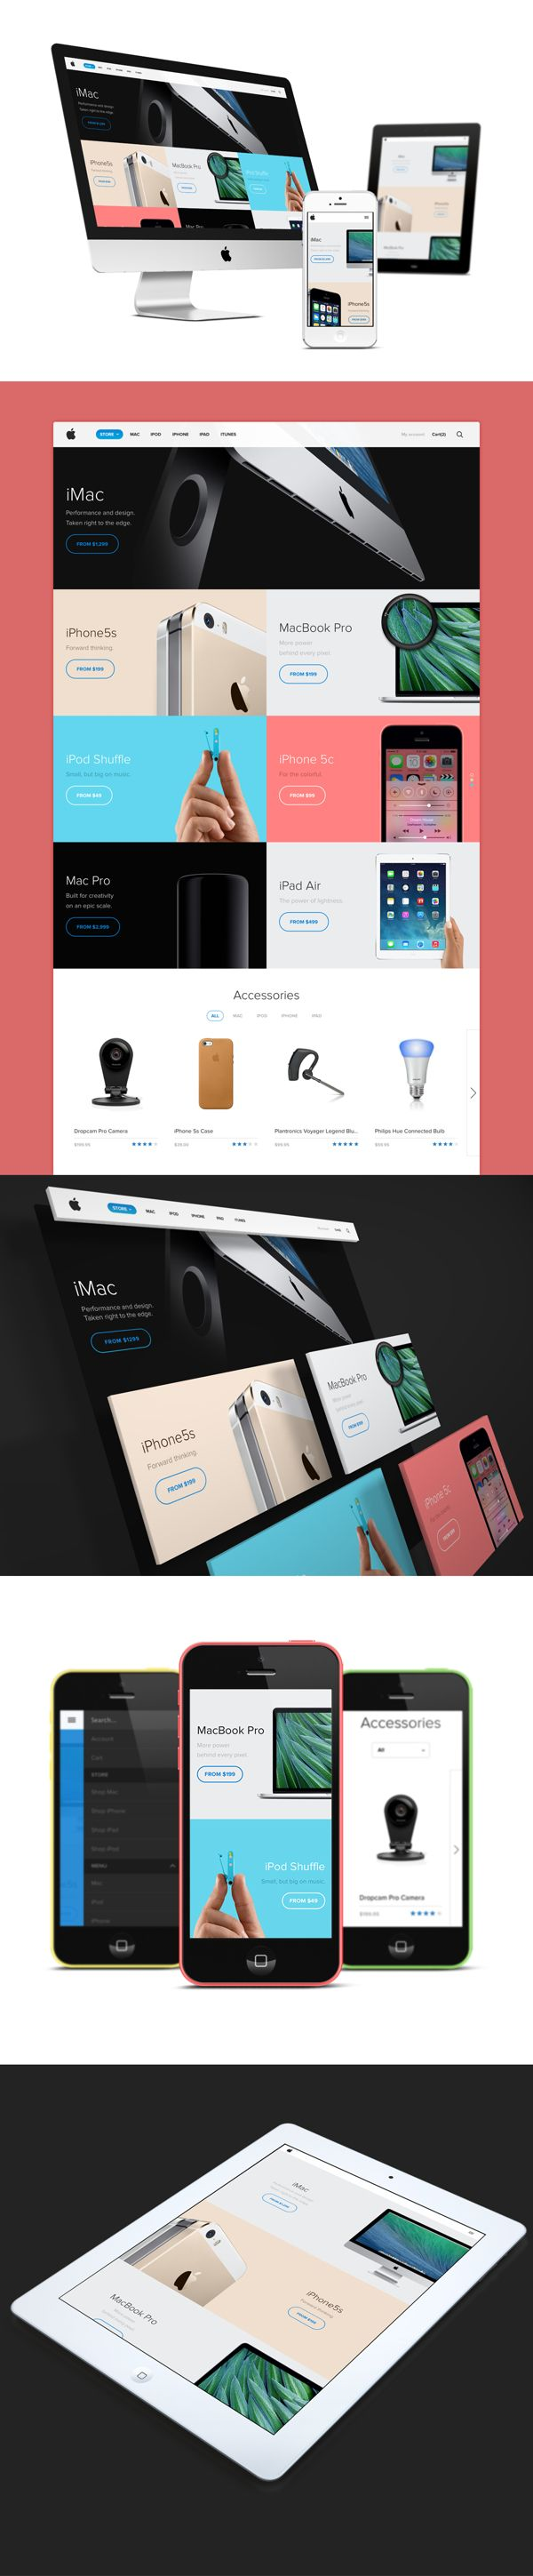 Apple Store Redesign by Amber Creative, via Behance